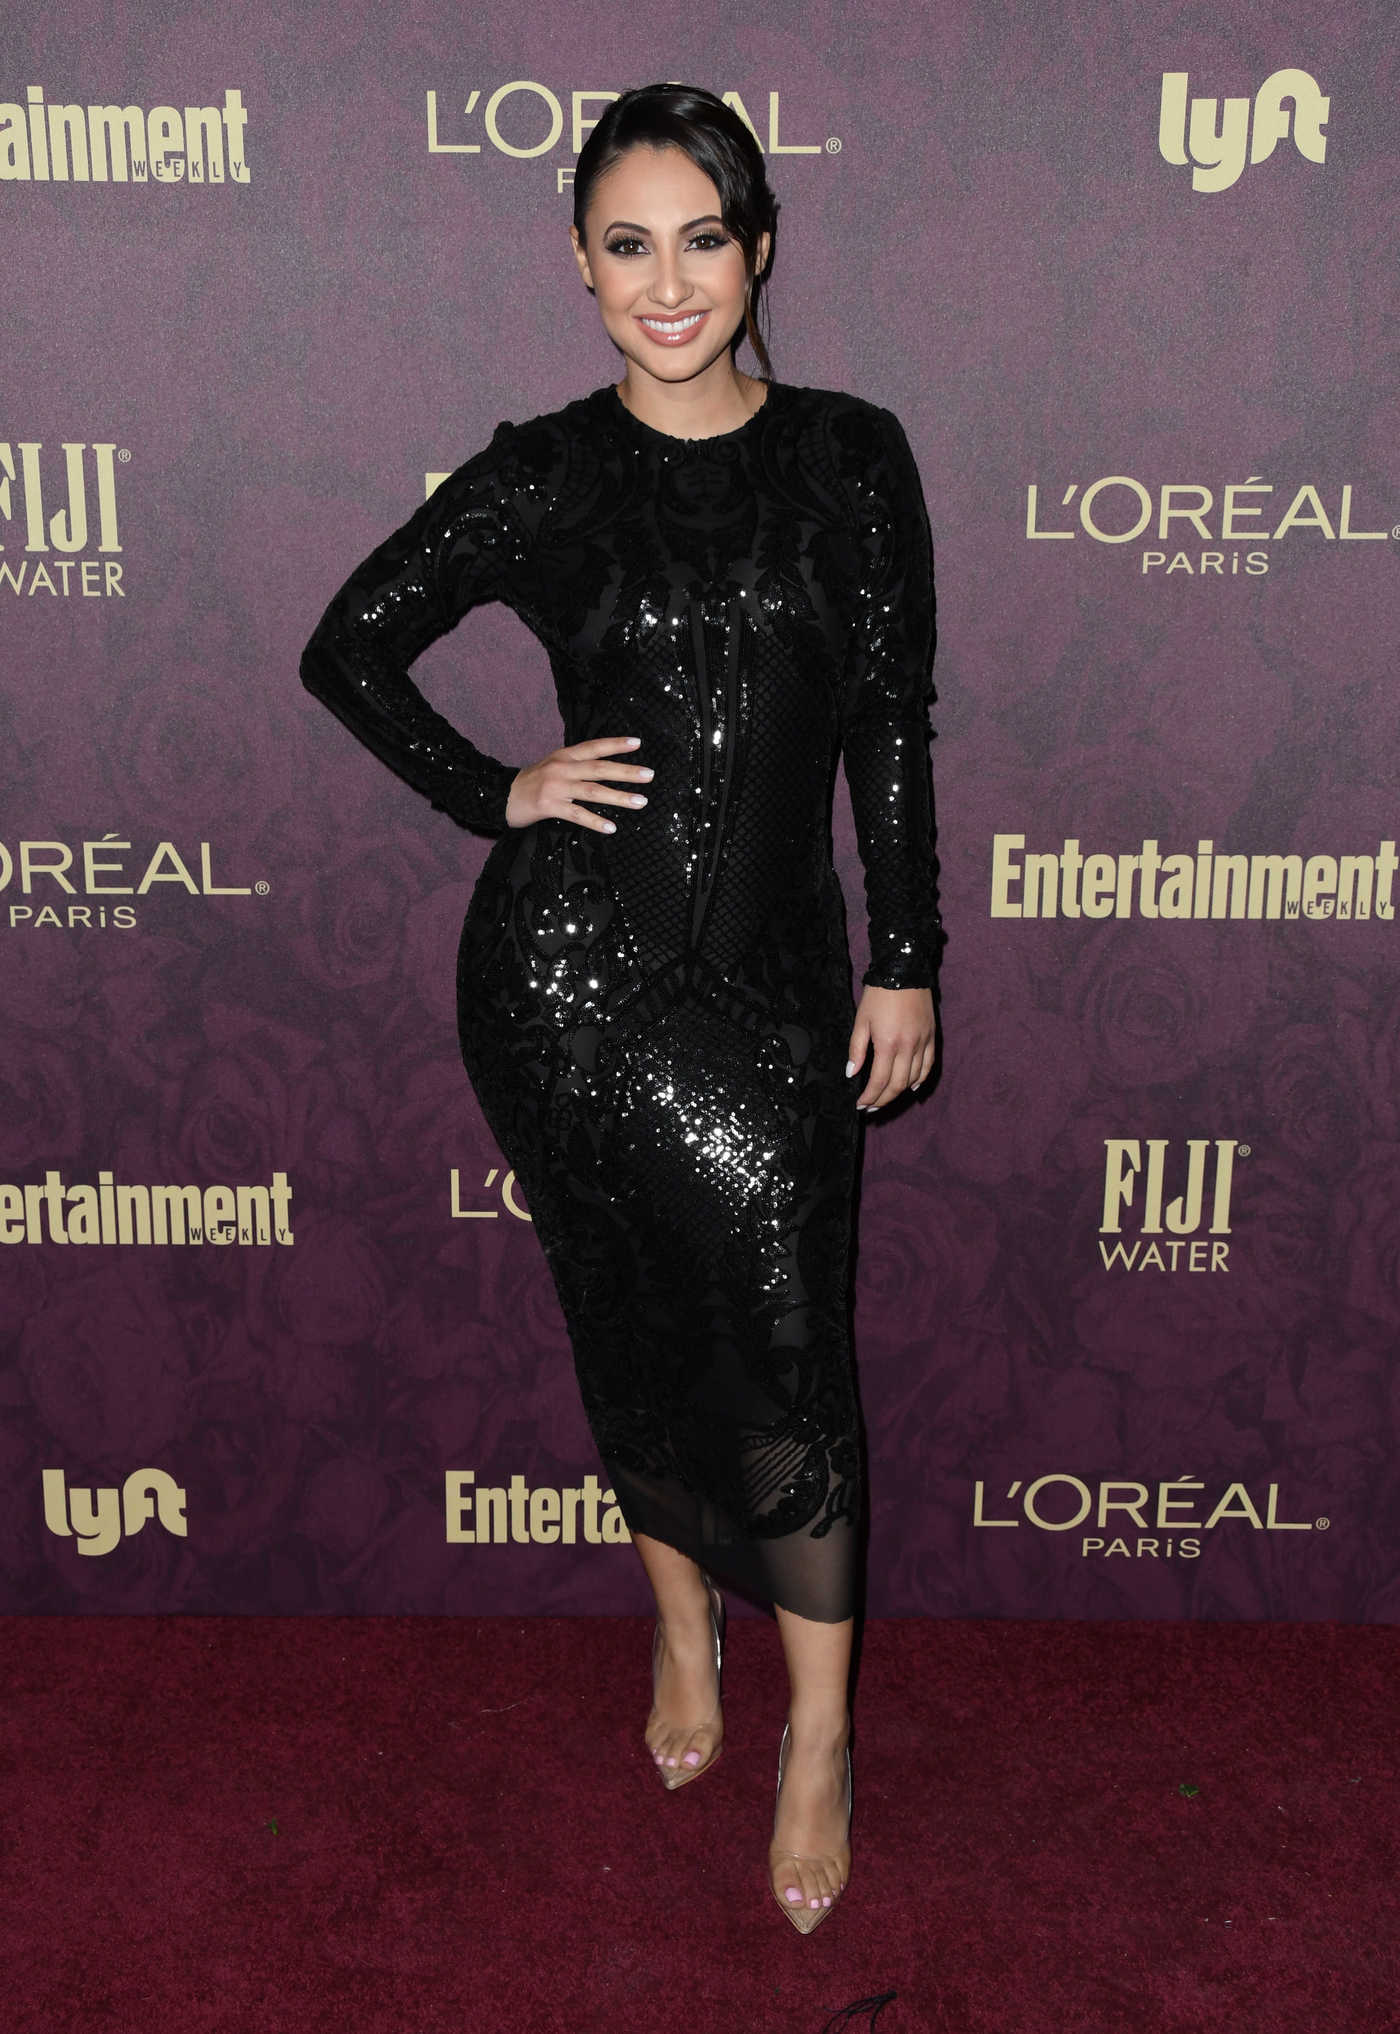 Francia Raisa Attends Entertainment Weekly and L'Oreal Paris Pre-Emmy Party in Los Angeles 09/15/2018